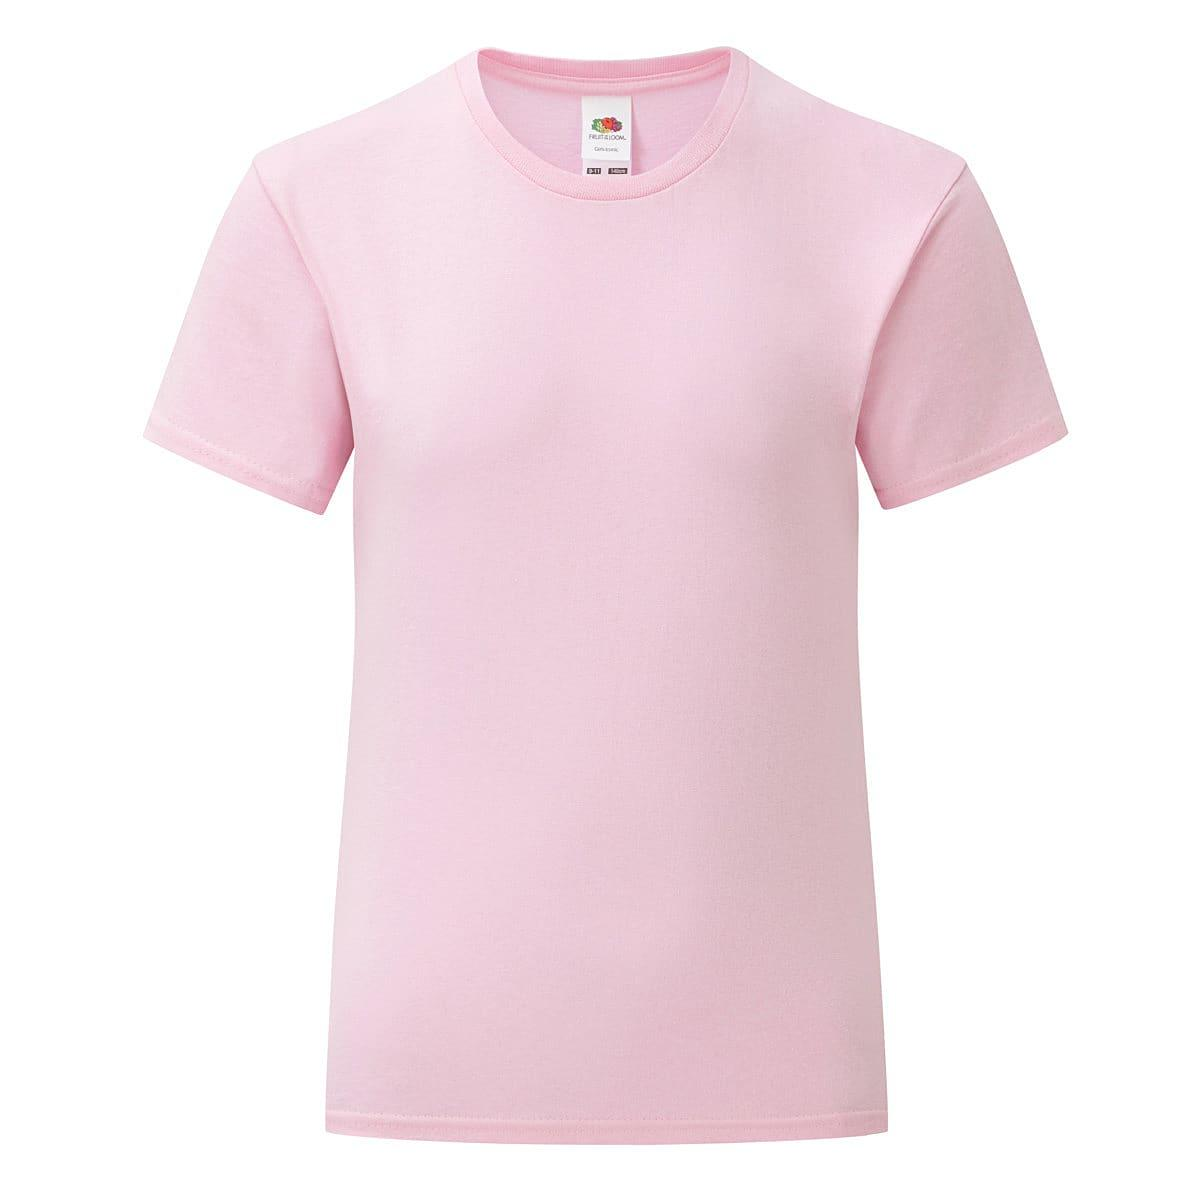 Fruit Of The Loom Girls Iconic T-Shirt in Light Pink (Product Code: 61025)